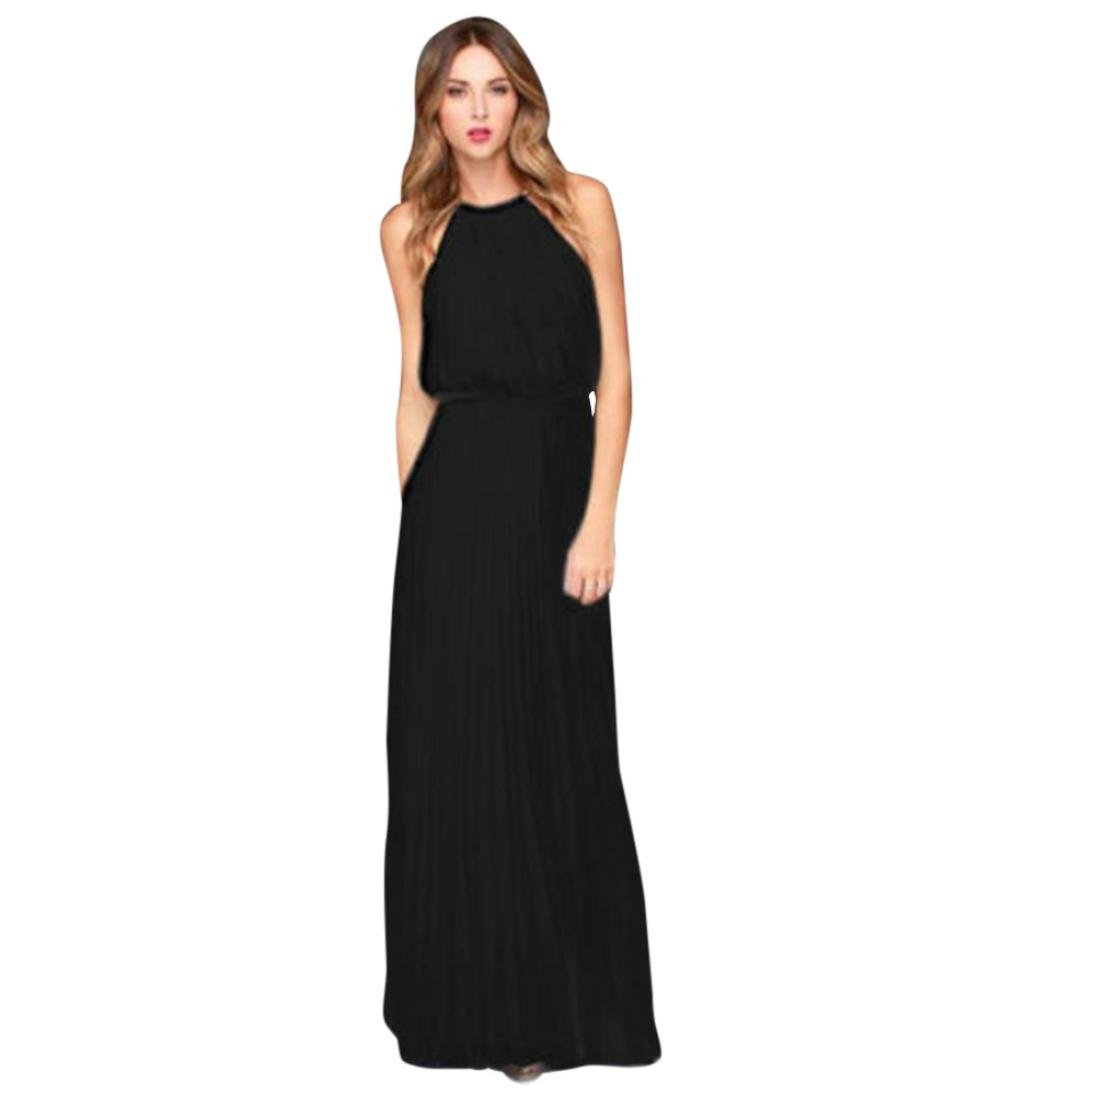 cc28fa2bfc84 ♚dresses with pockets for women dresses for women party wedding dresses for  women work casual dresses for women casual summer dresses for wedding guest  ...